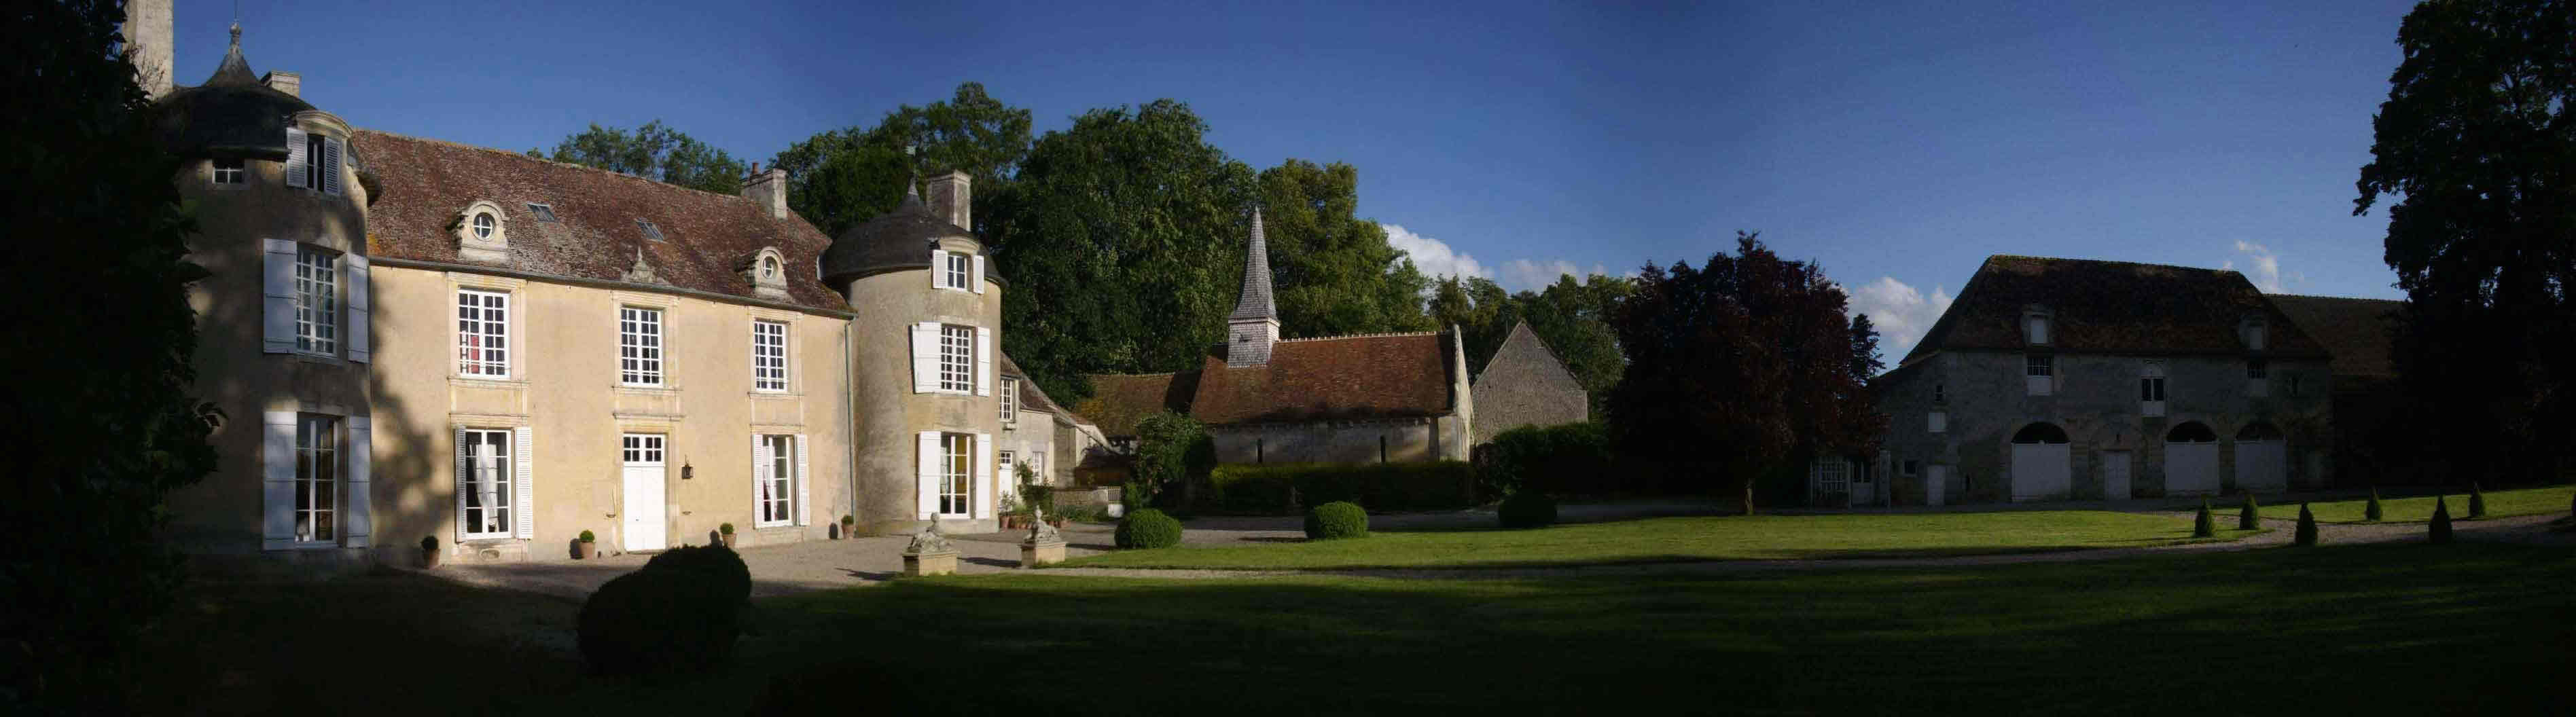 chateau d ailly calvados chambre d hotes